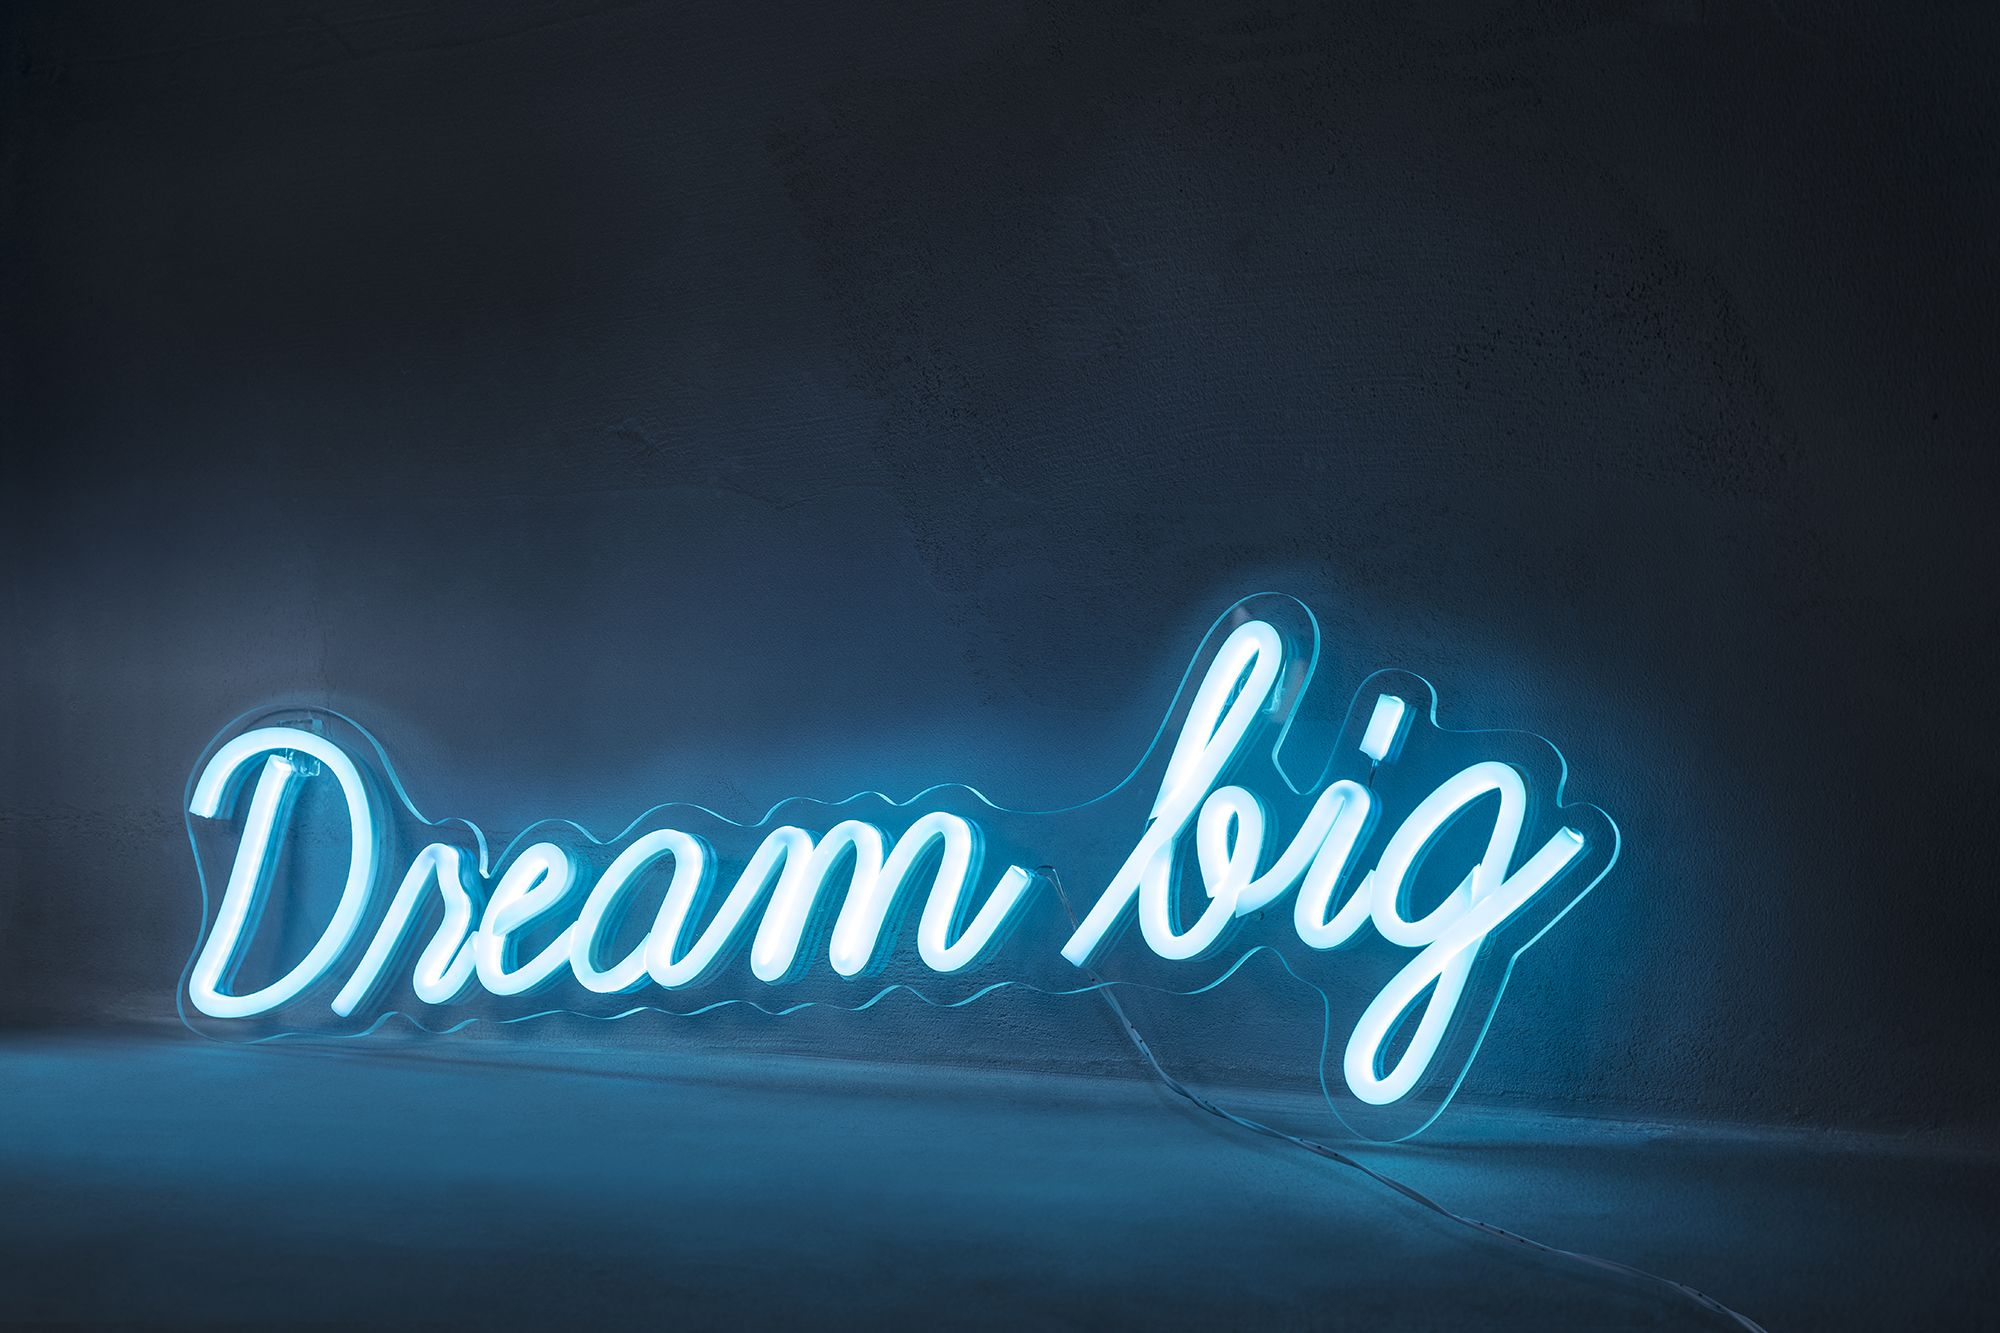 Dream big neon sign wall light in 2020 neon signs wall